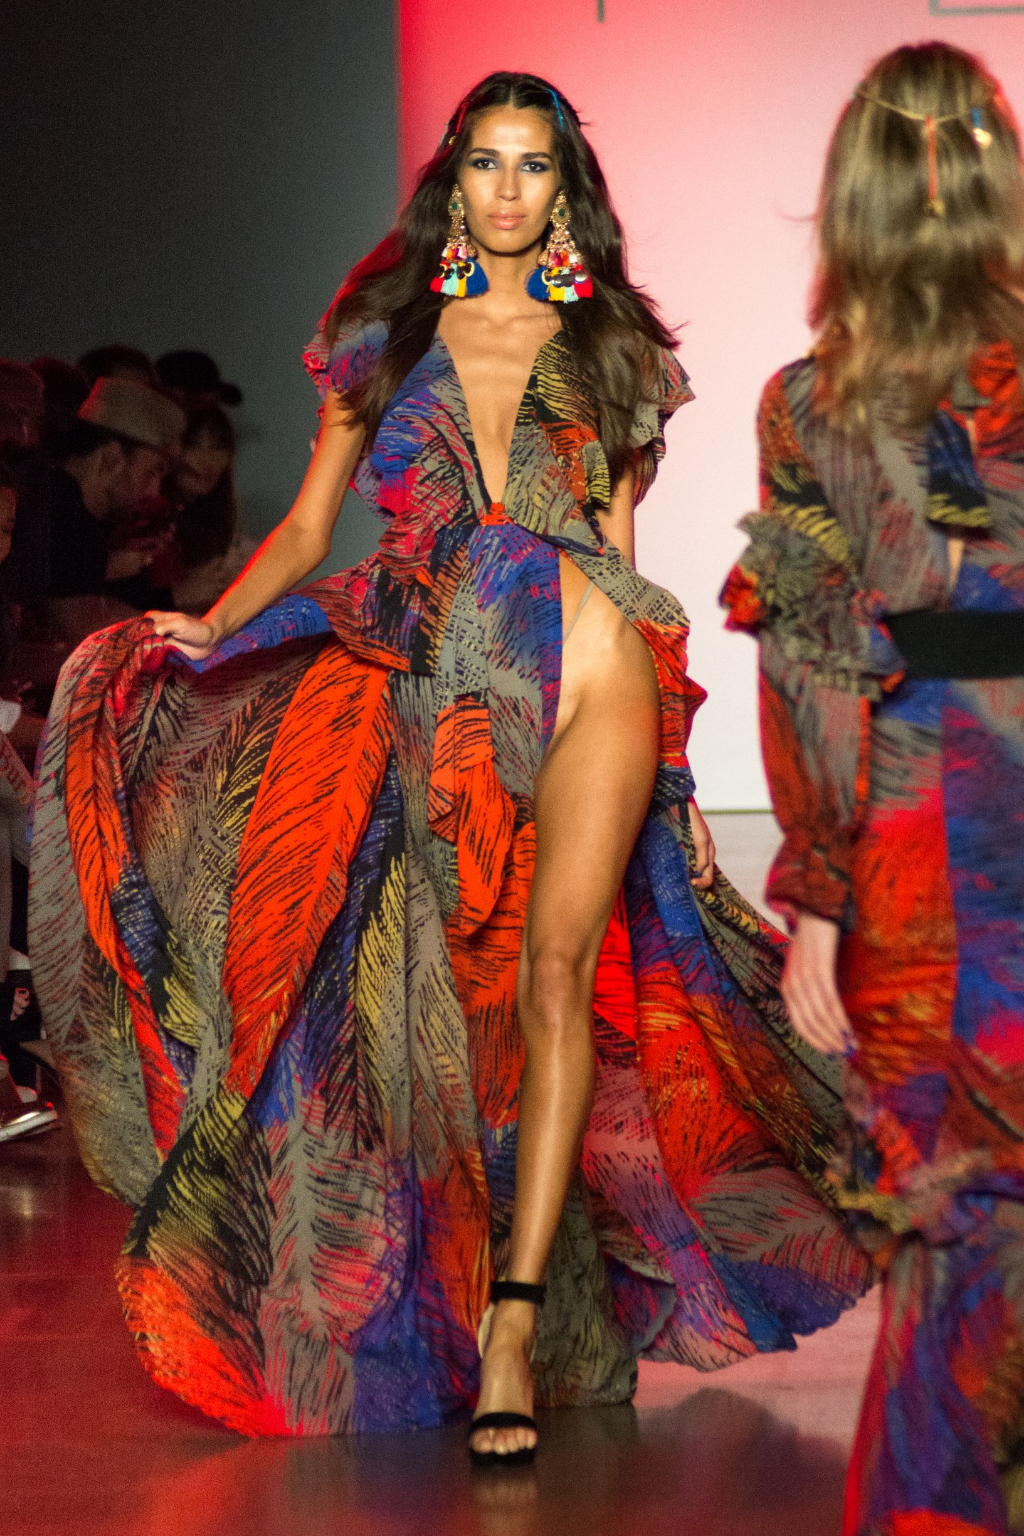 Michael Costello Spring/Summer 2019 - Gitana - POP STYLE TV